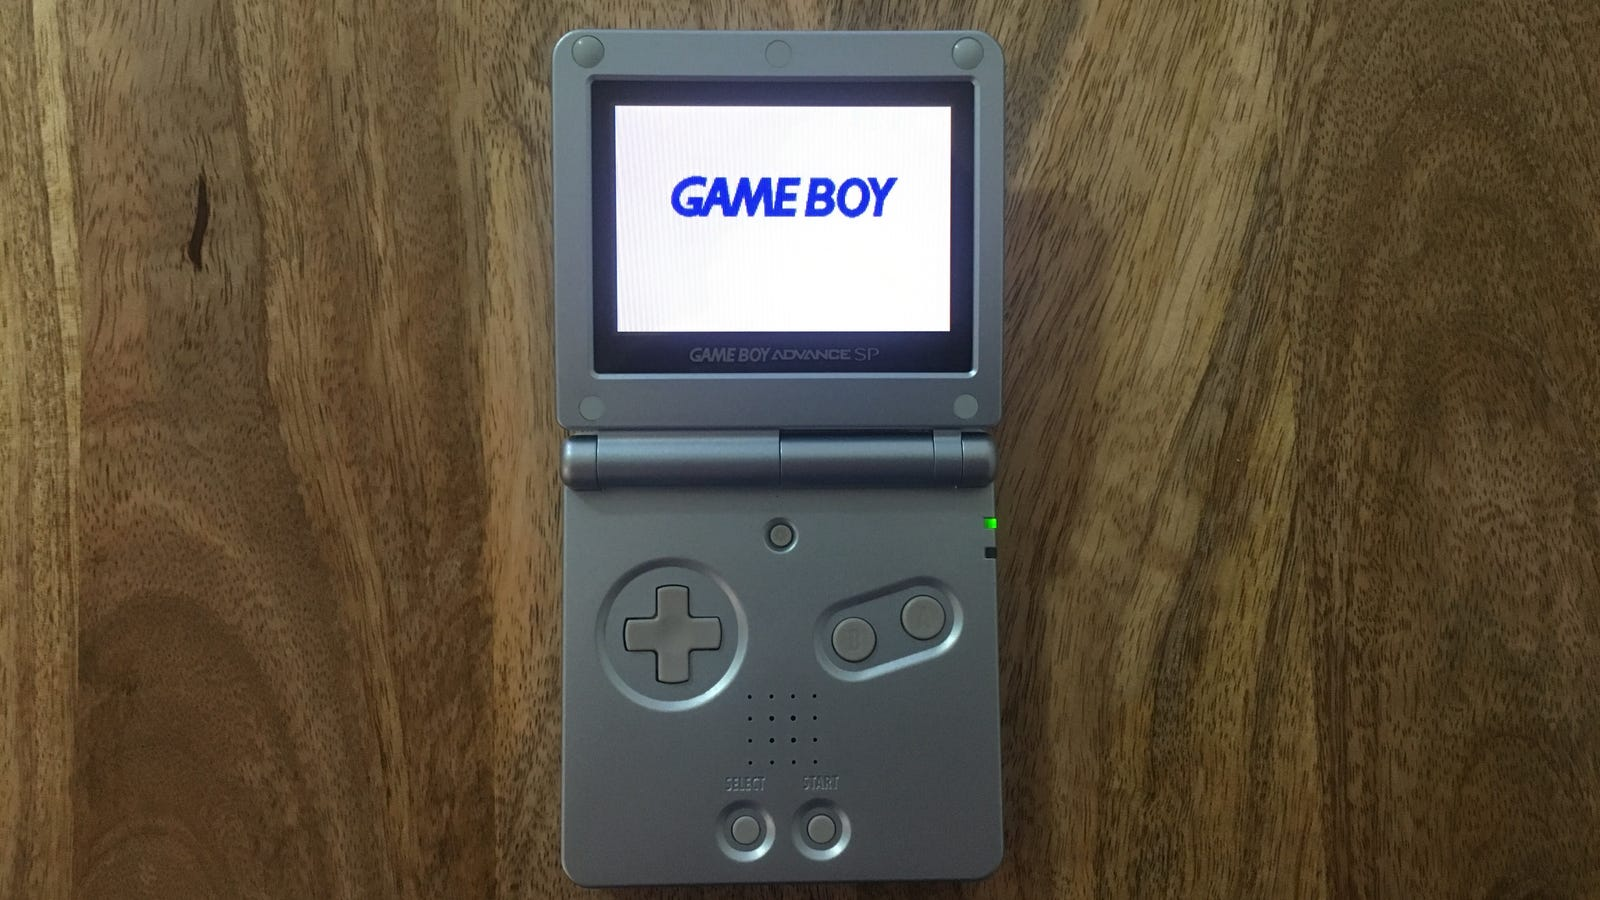 Finding An Old Game Boy Advance Feels Like Slipping Into A Storybook